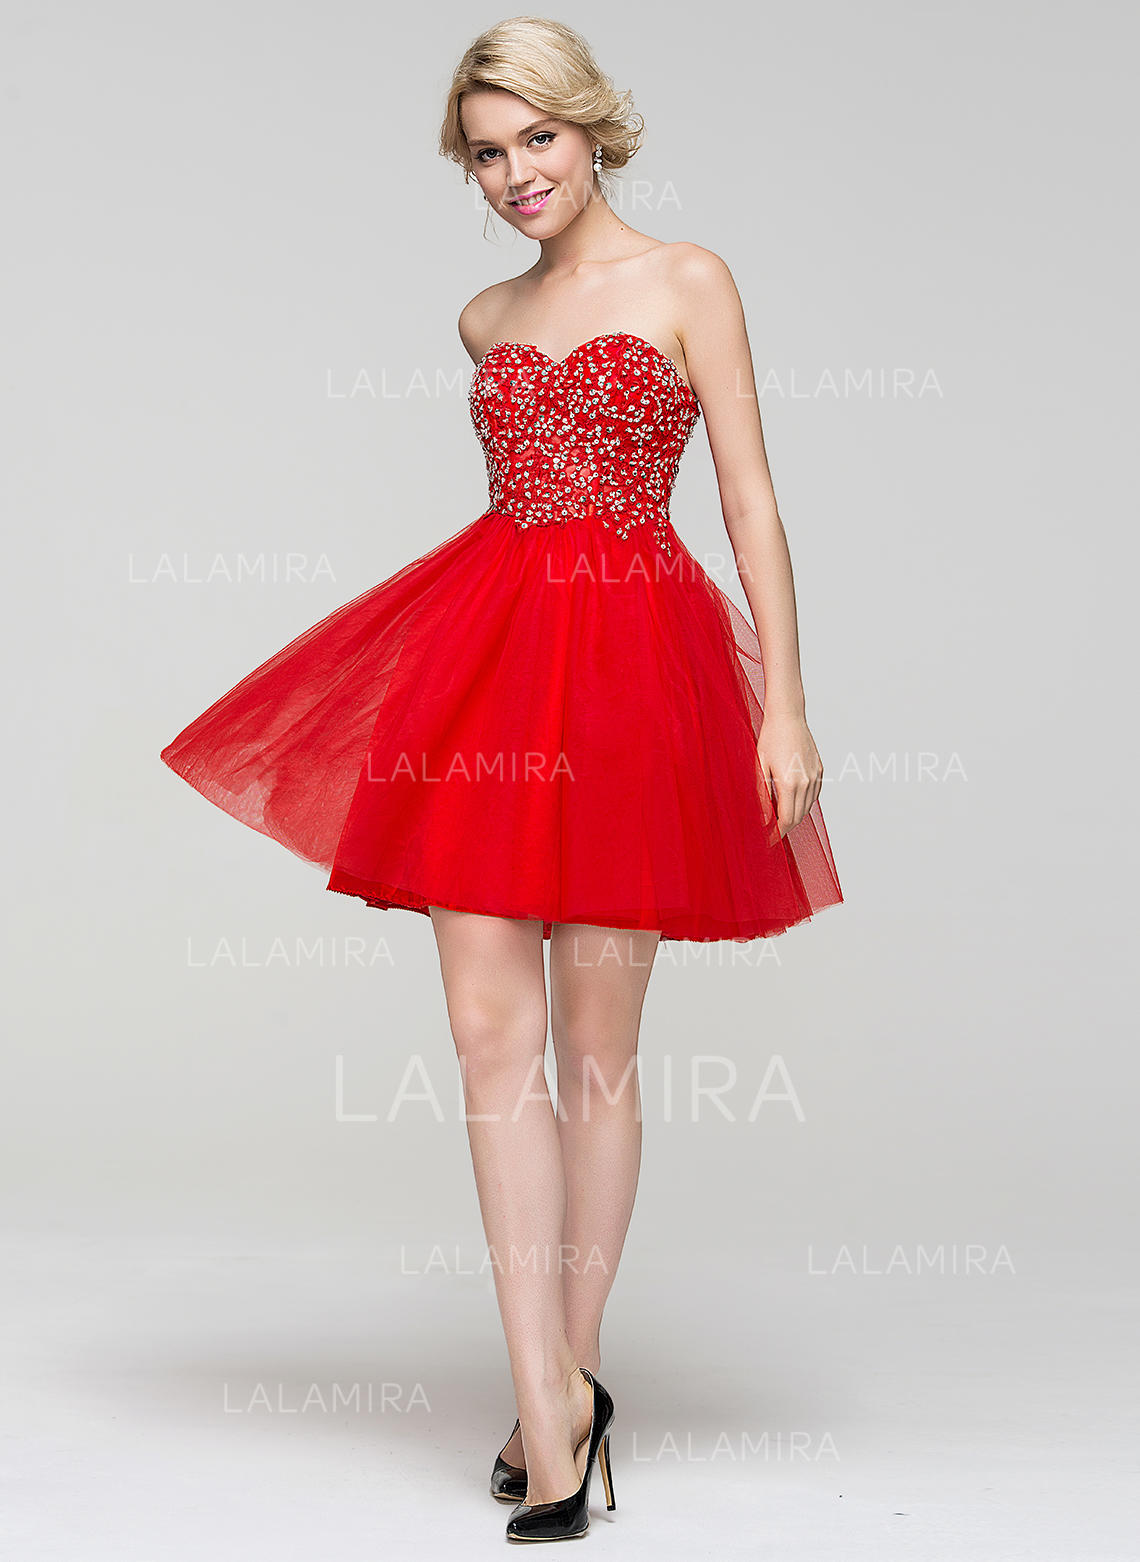 6ce10bb2aa3 Legit Websites To Buy Homecoming Dresses